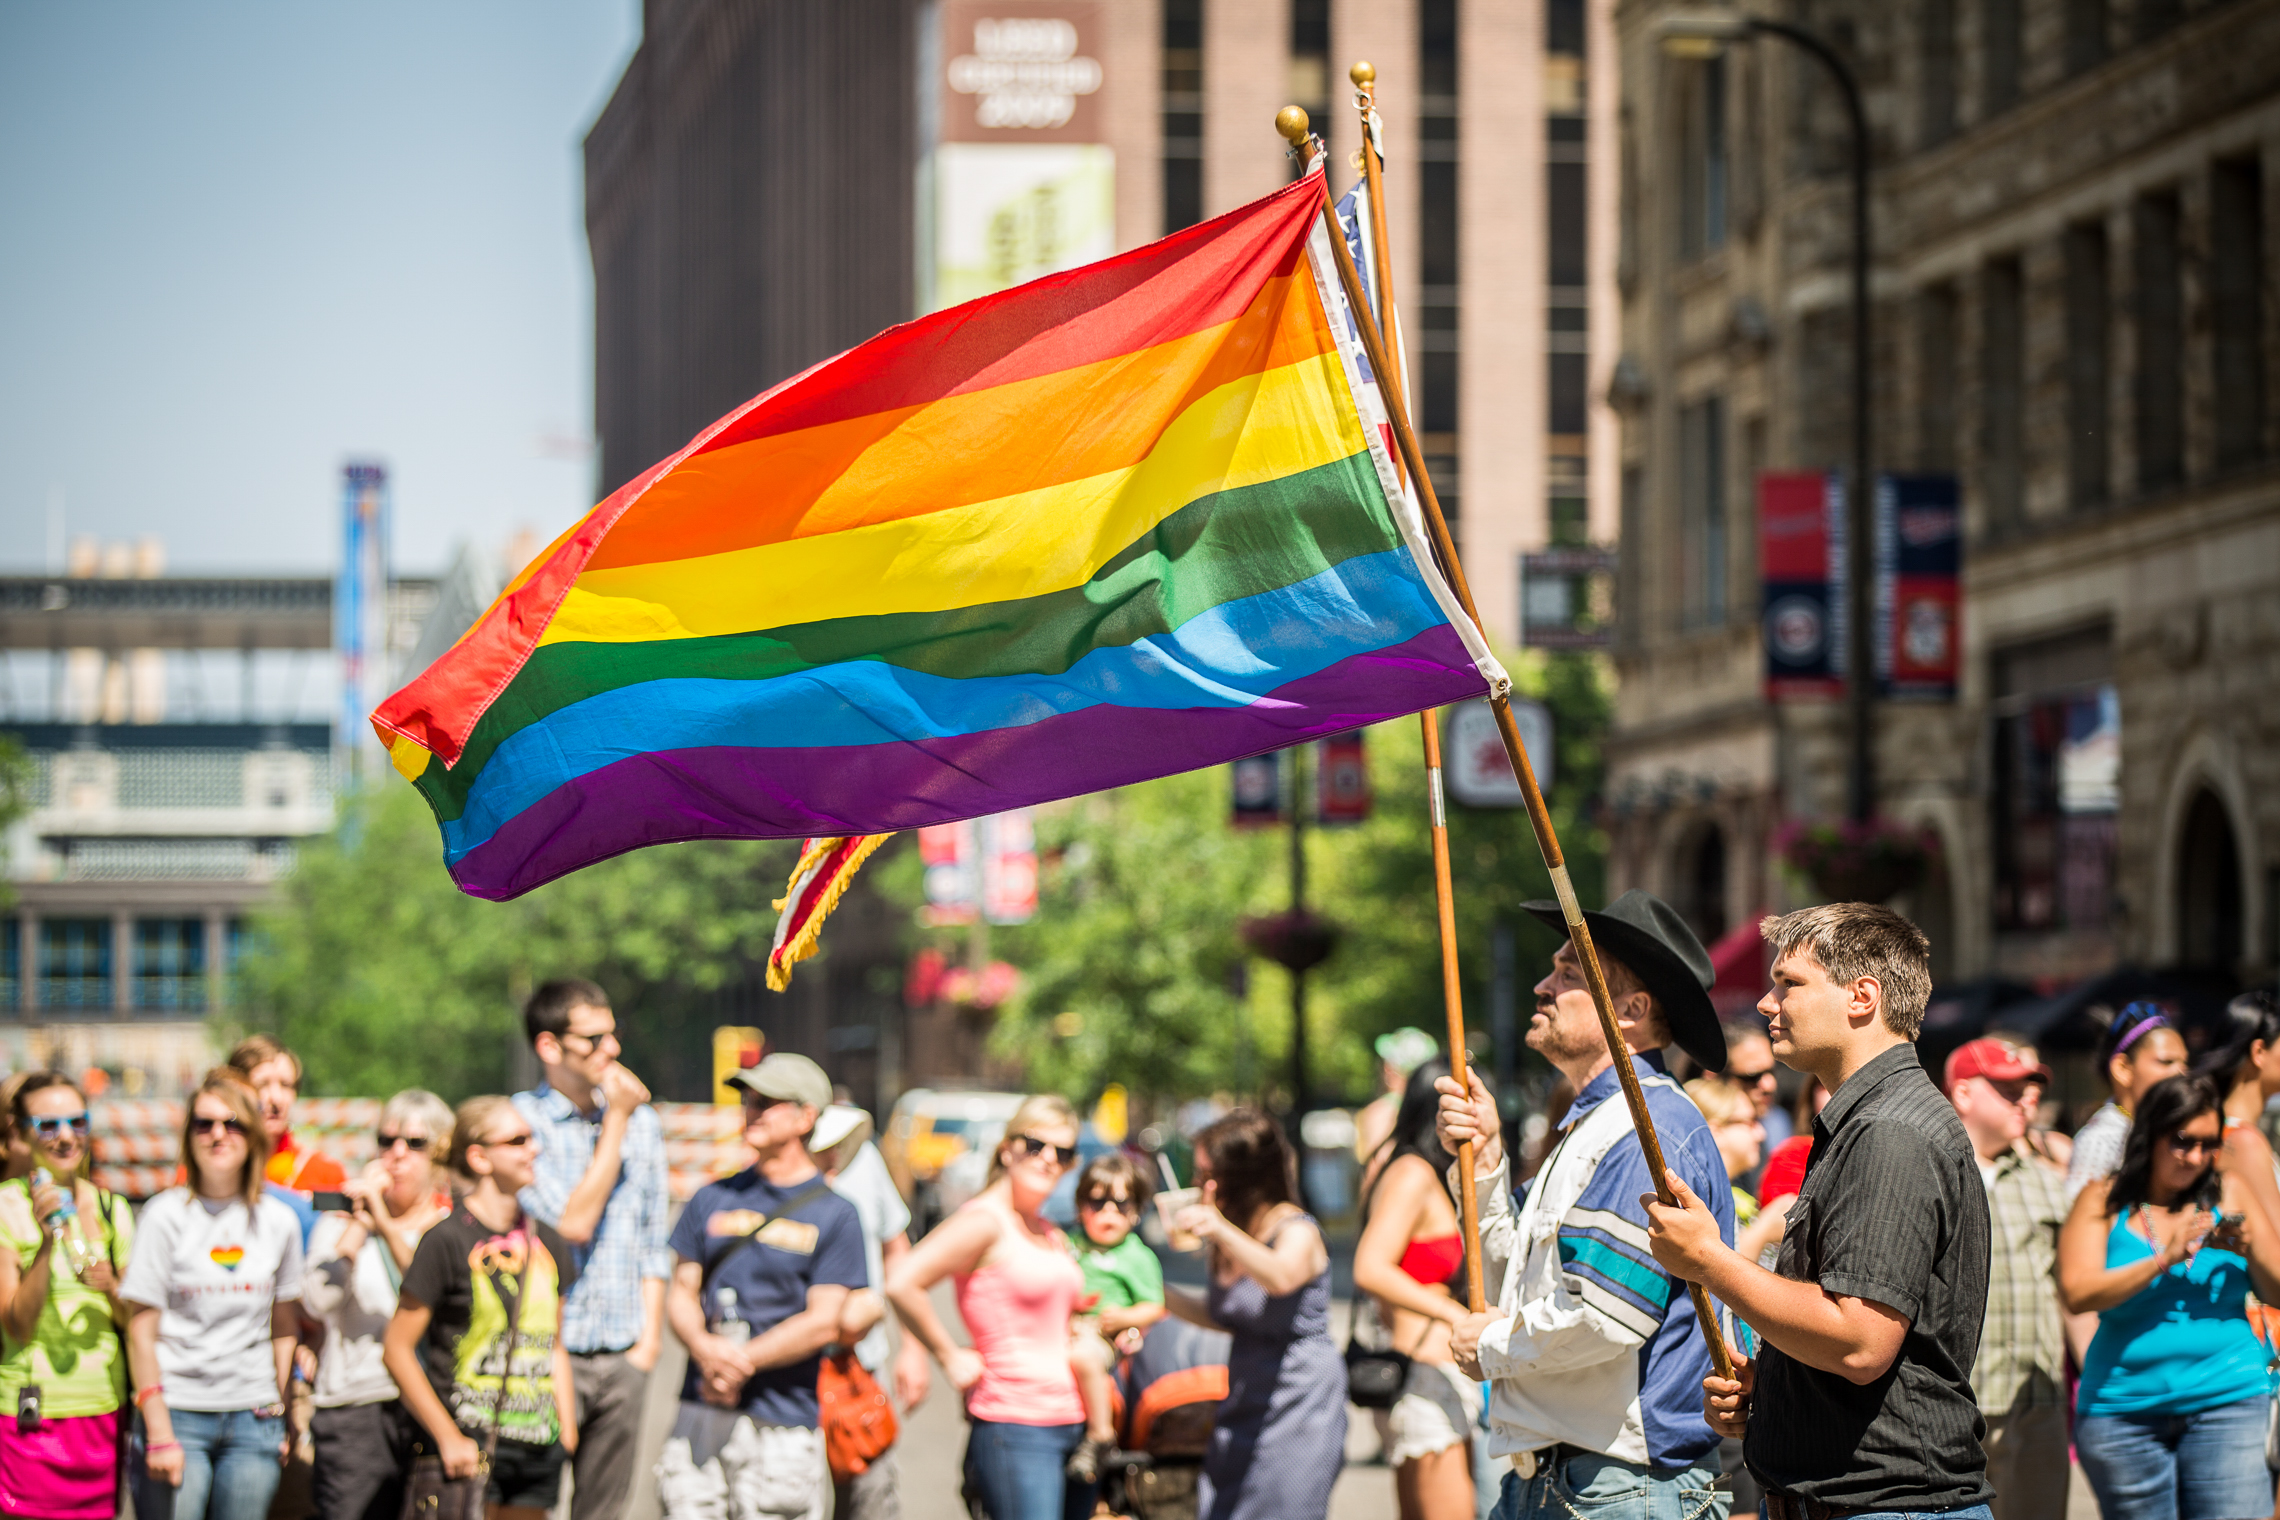 St Louis Gay Pride 2017 Information -